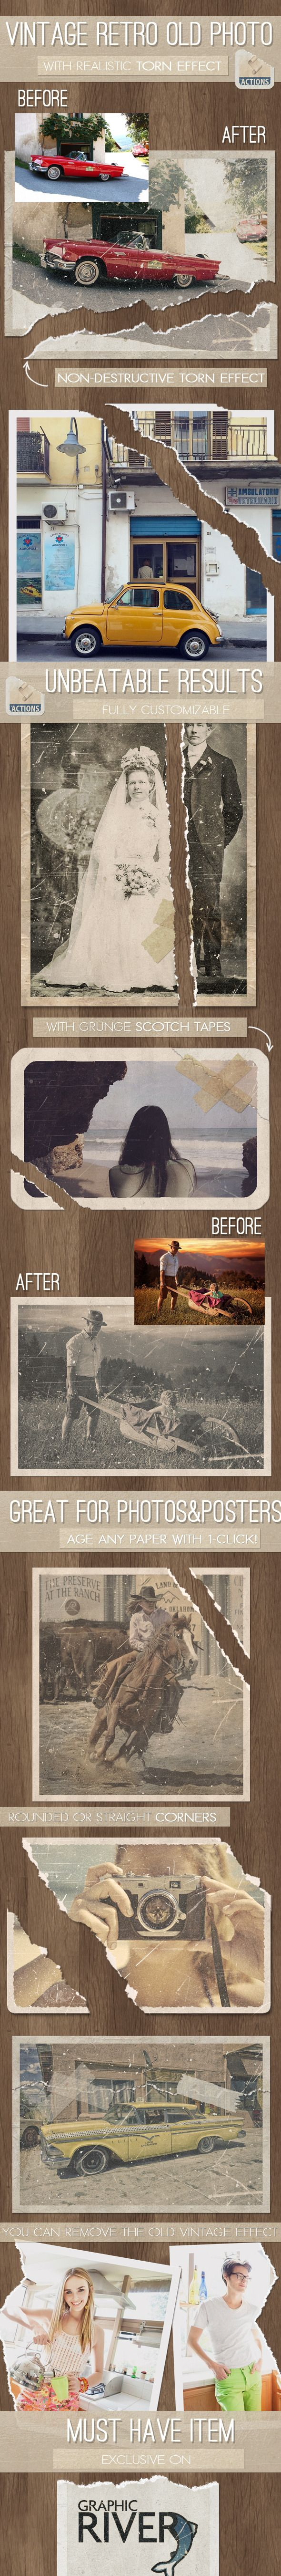 Old Photo with Torn Ripped Effect Photoshop Action — Layered PSD #torn photoshop effect #worn photo effect • Available here → https://graphicriver.net/item/old-photo-with-torn-ripped-effect-photoshop-action/12406934?ref=pxcr